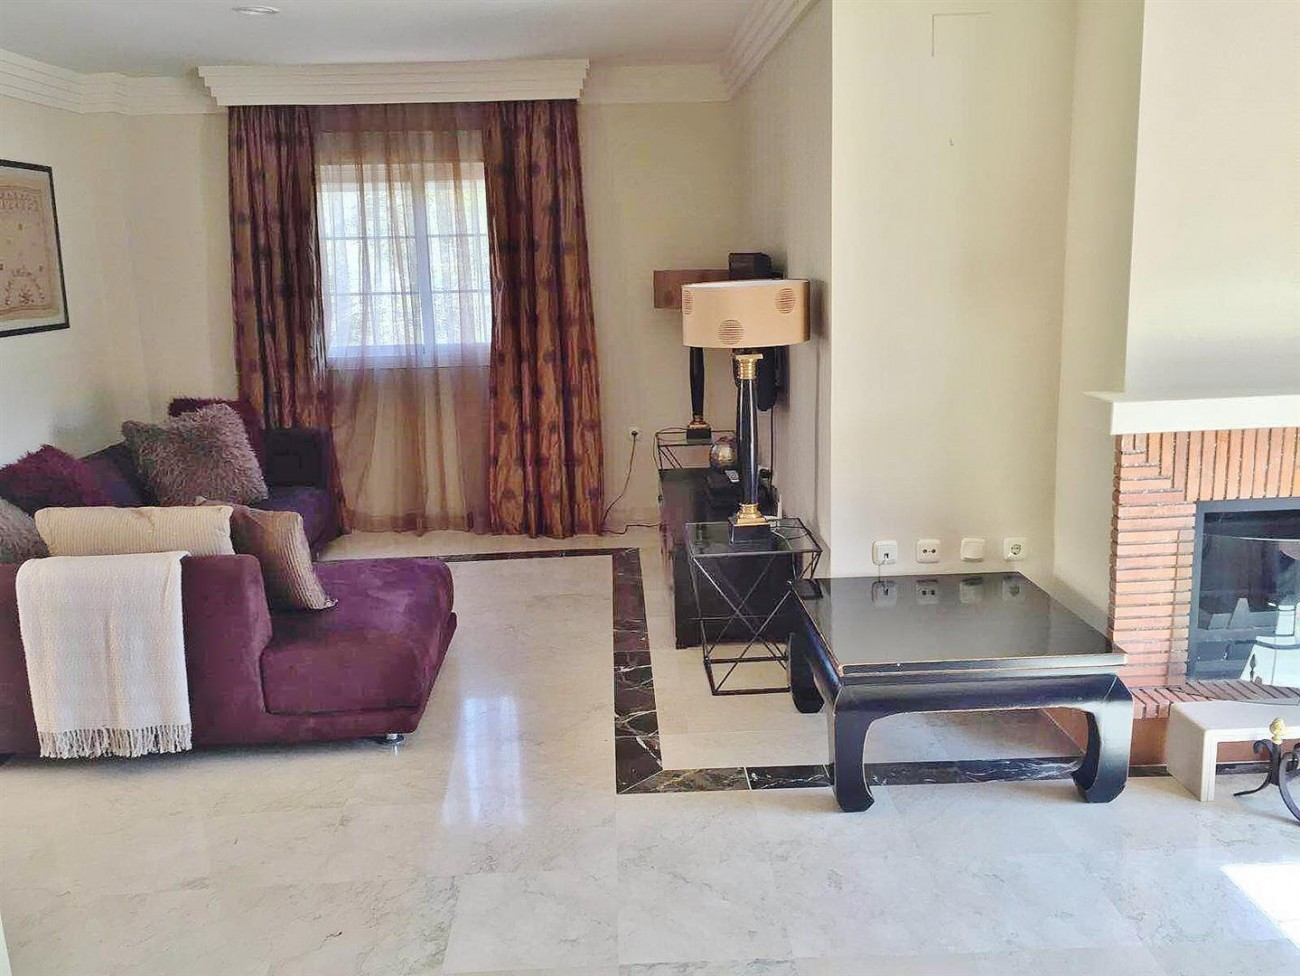 3 Bedrooms apartment for rent East Marbella (10) (Large)